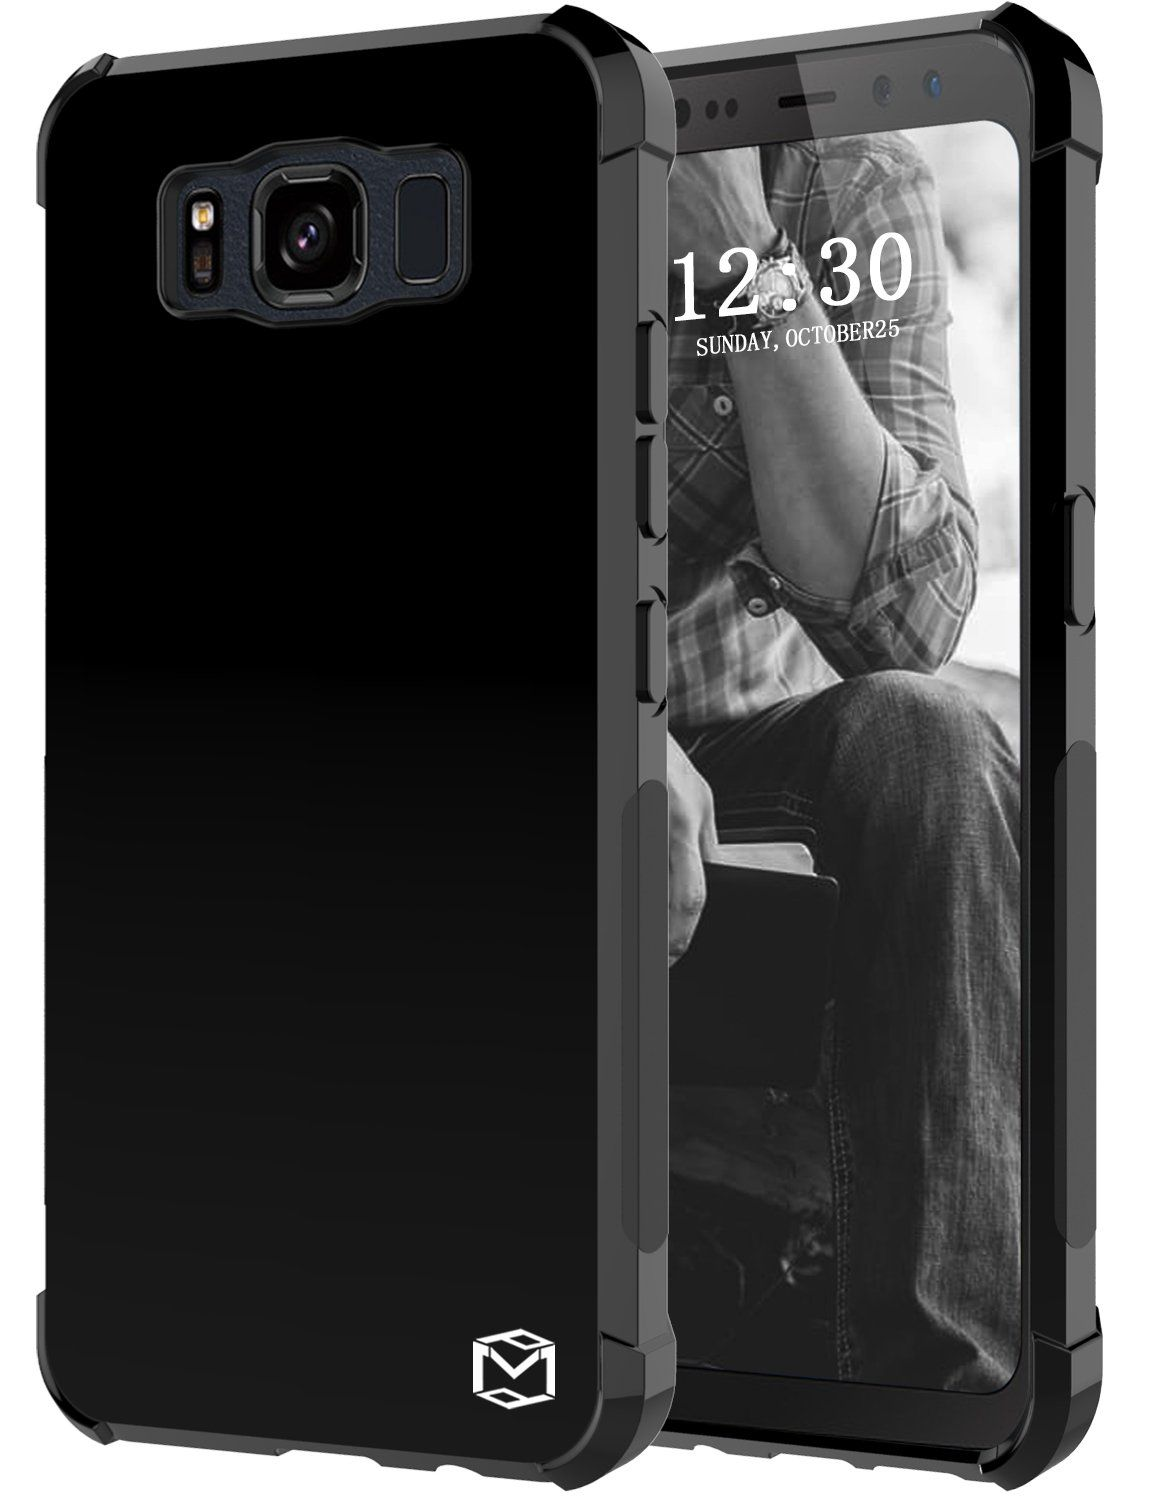 pick up 82e0e dc412 Galaxy S8 Active Case, MP-MALL [Slim Fit] [Shockproof] Flexible TPU ...